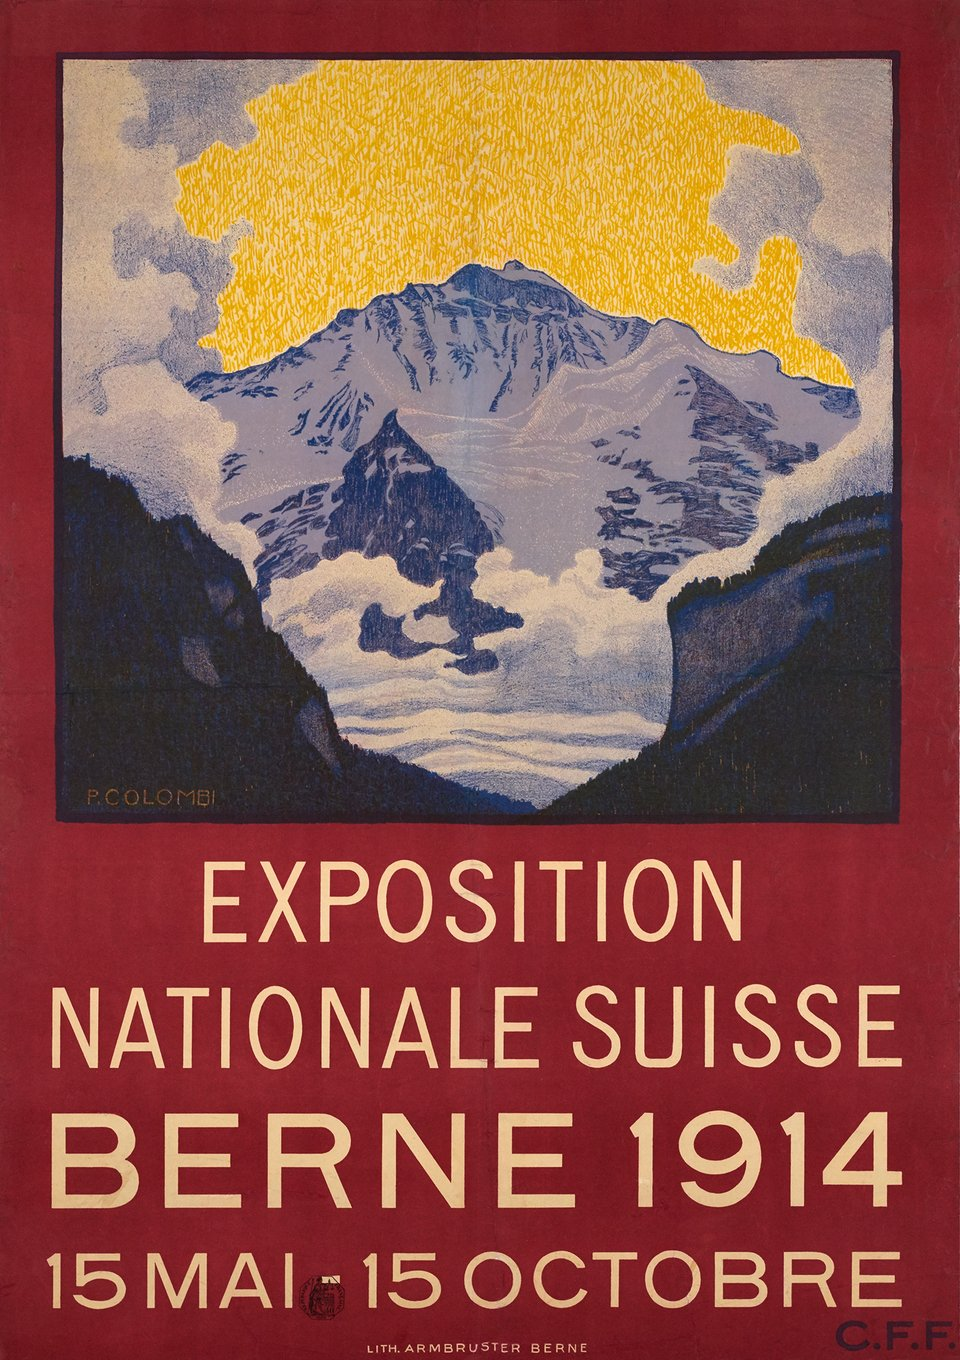 Berne, Exposition Nationale Suisse – Affiche ancienne – Plinio COLOMBI – 1914